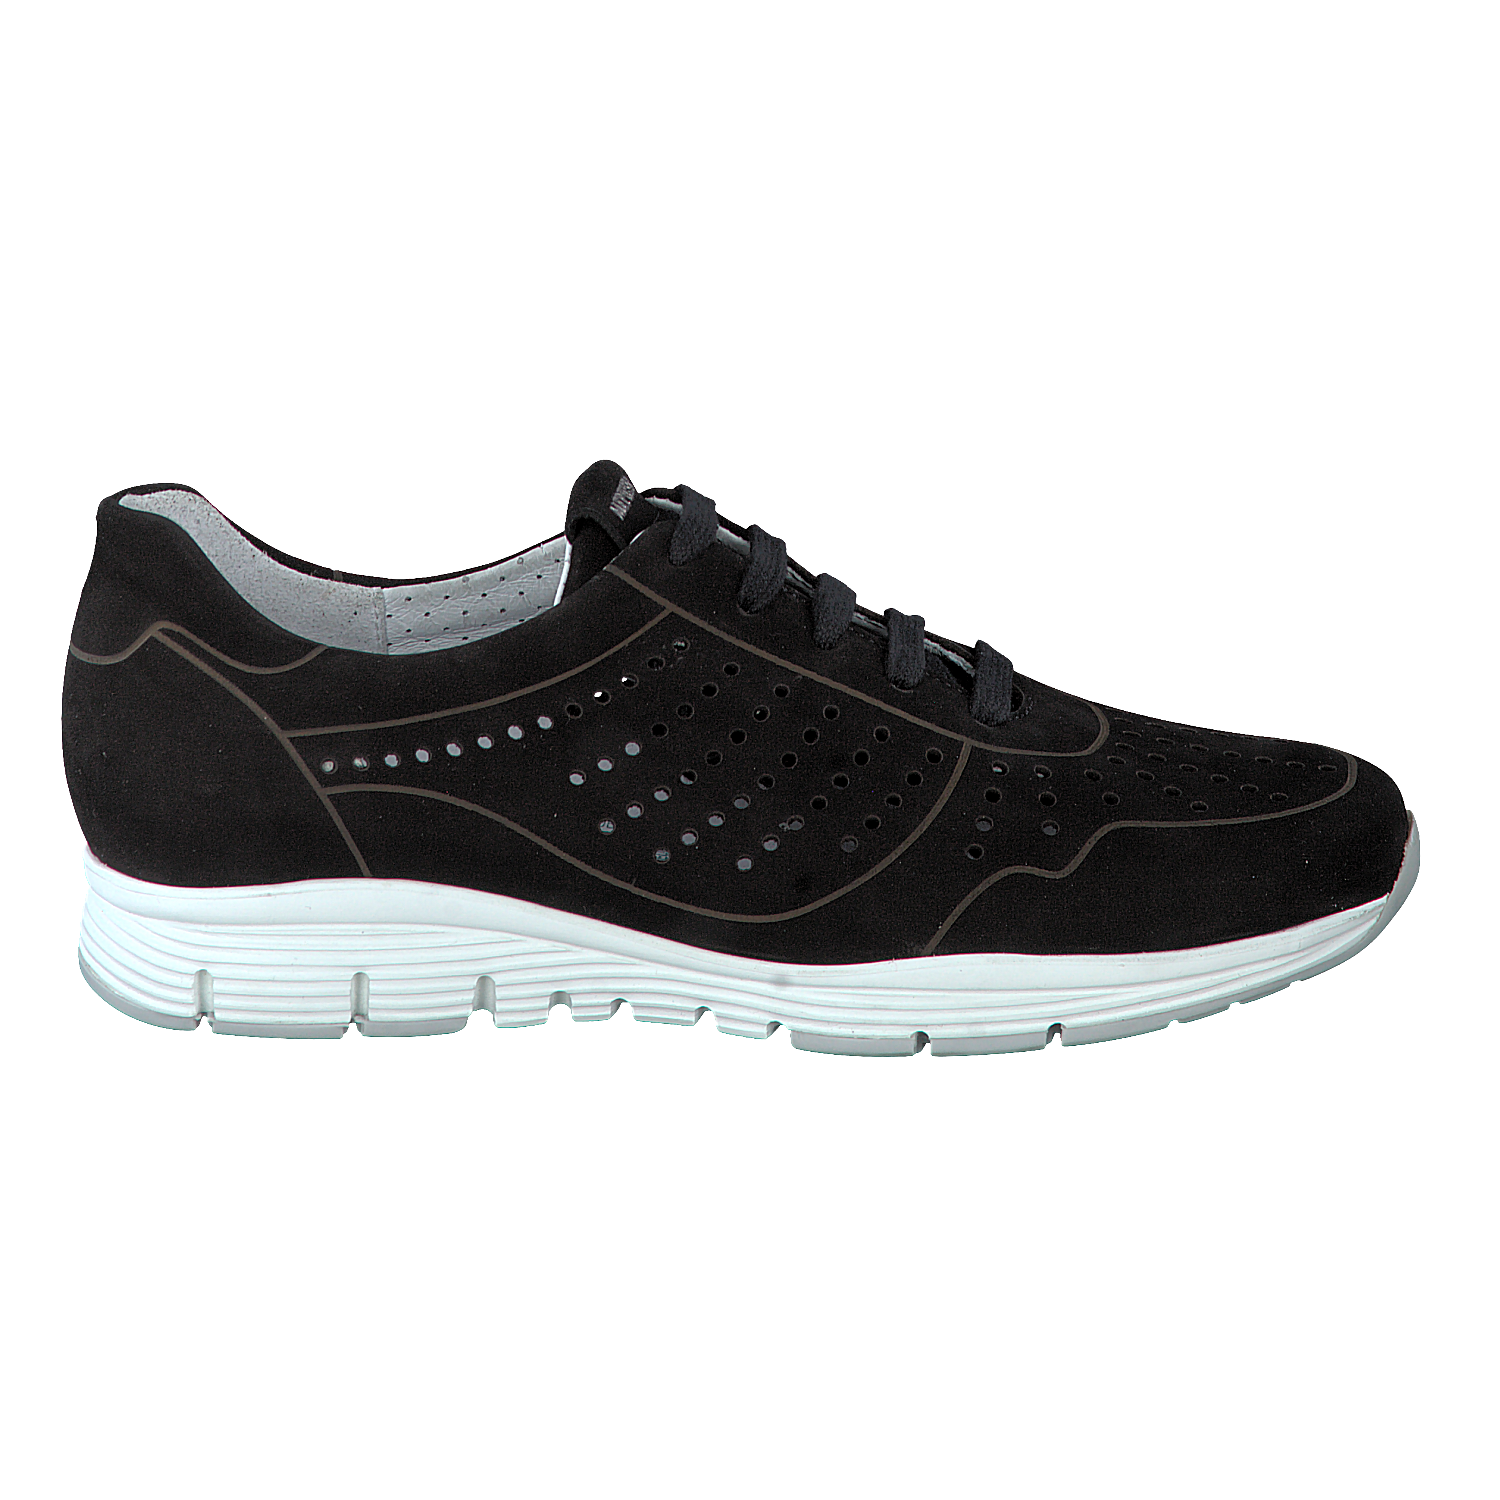 Boutique Livraison Mephisto Ligne Chaussures En yYv67gbf